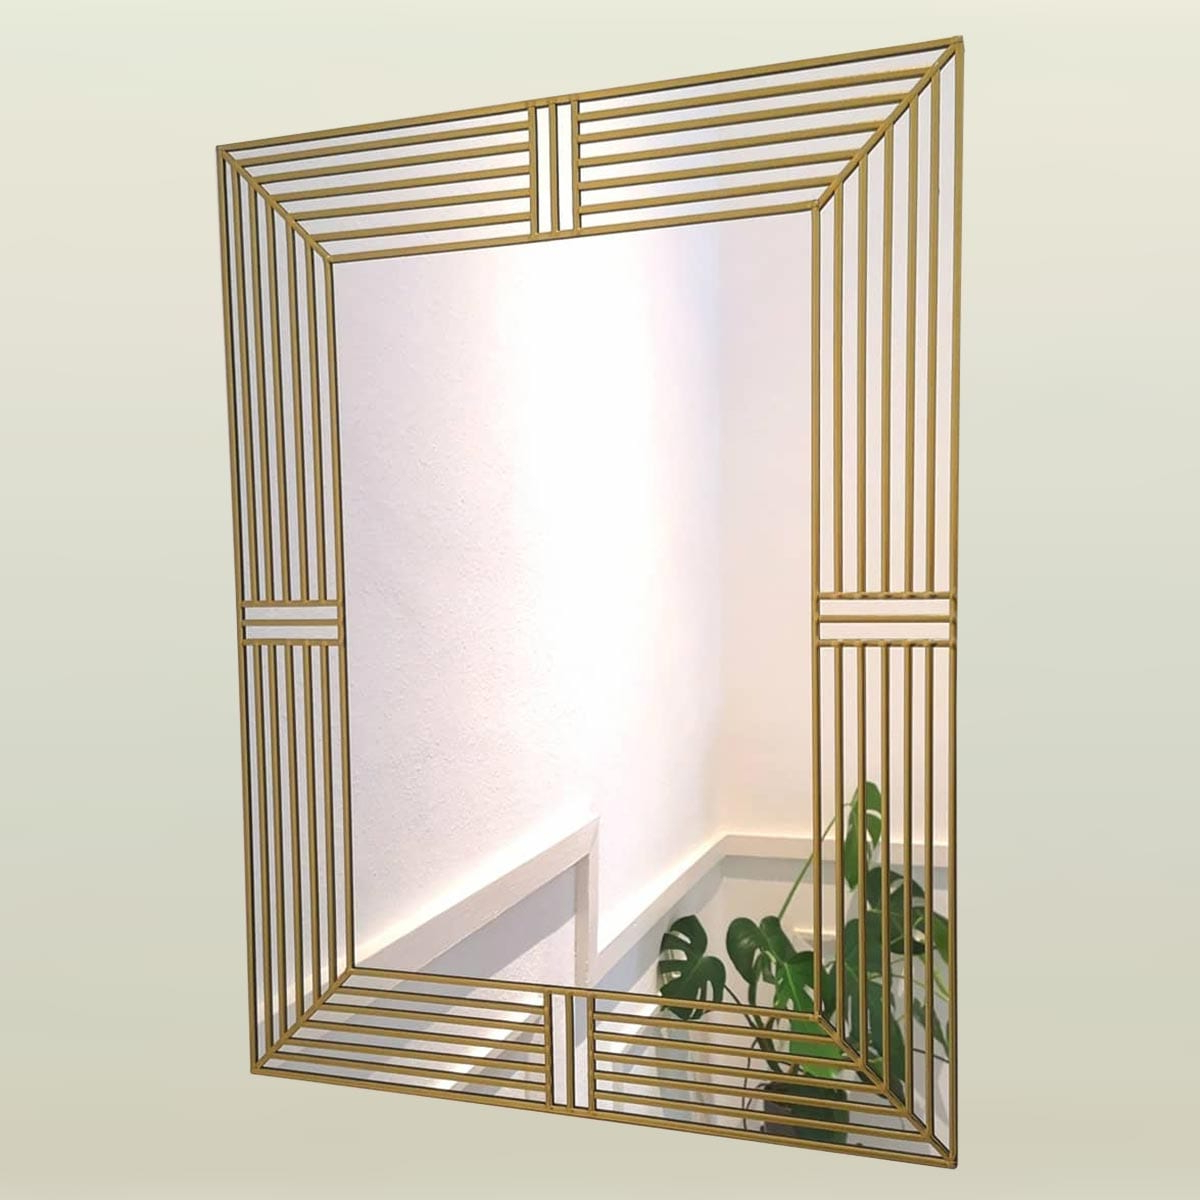 Well Liked Standard Wall Mirrors With Art Deco Wall Mirror 61x91cm (2ftx3ft) (View 17 of 20)